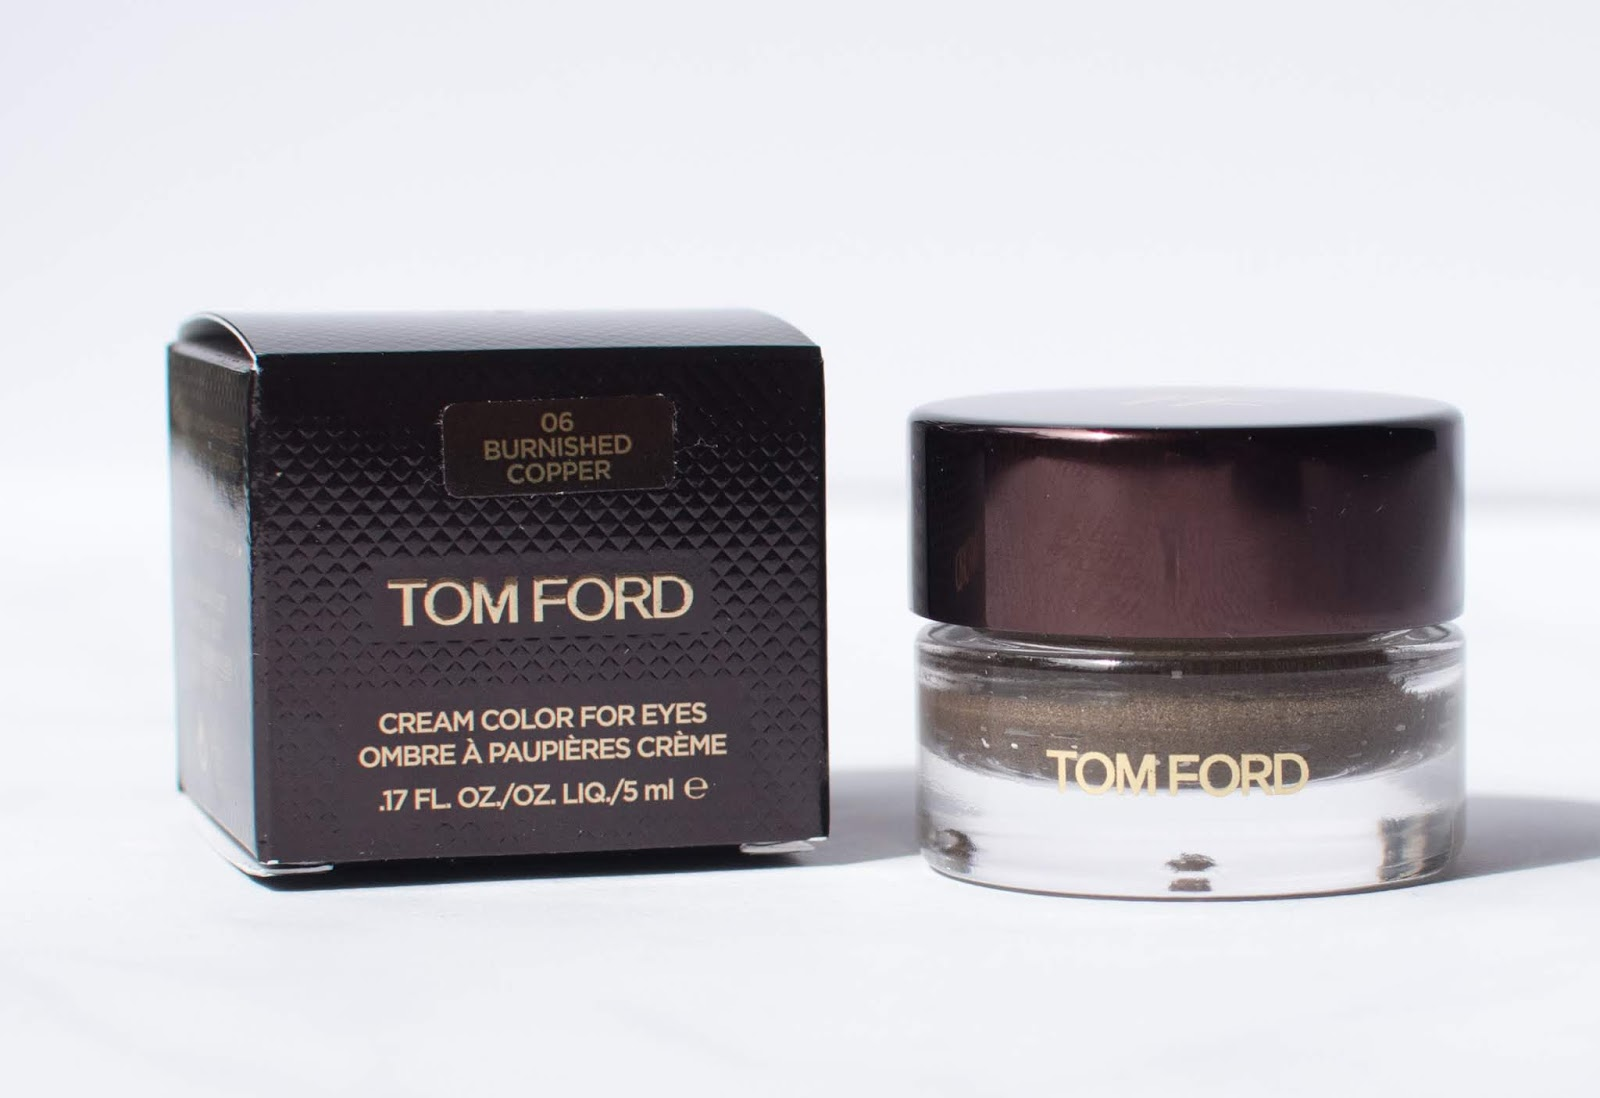 Tom Ford Cream Color for Eyes in Burnished Copper - Swatch, Review, and Photos